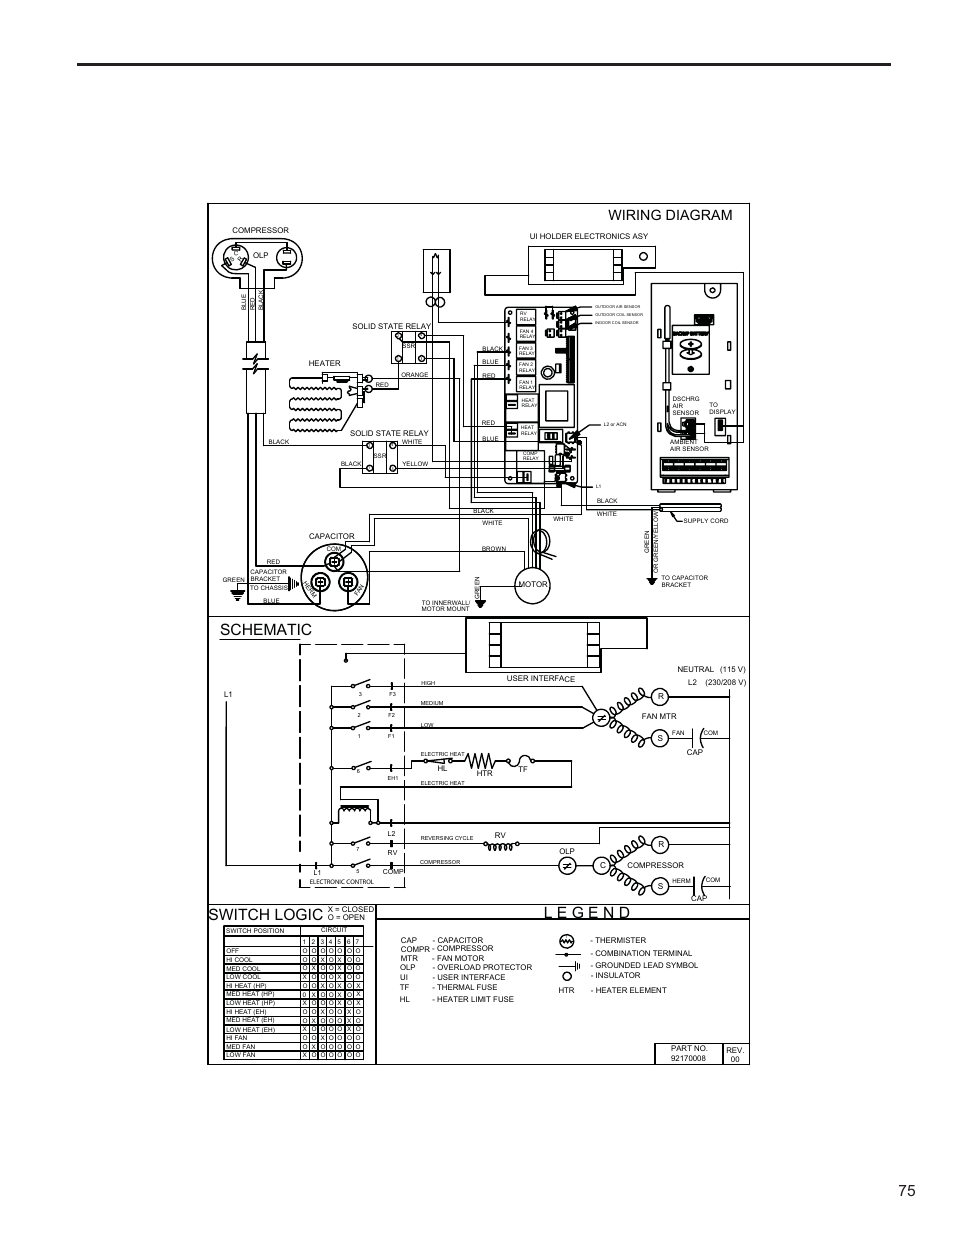 Schematic  Switch Logic  Wiring Diagram